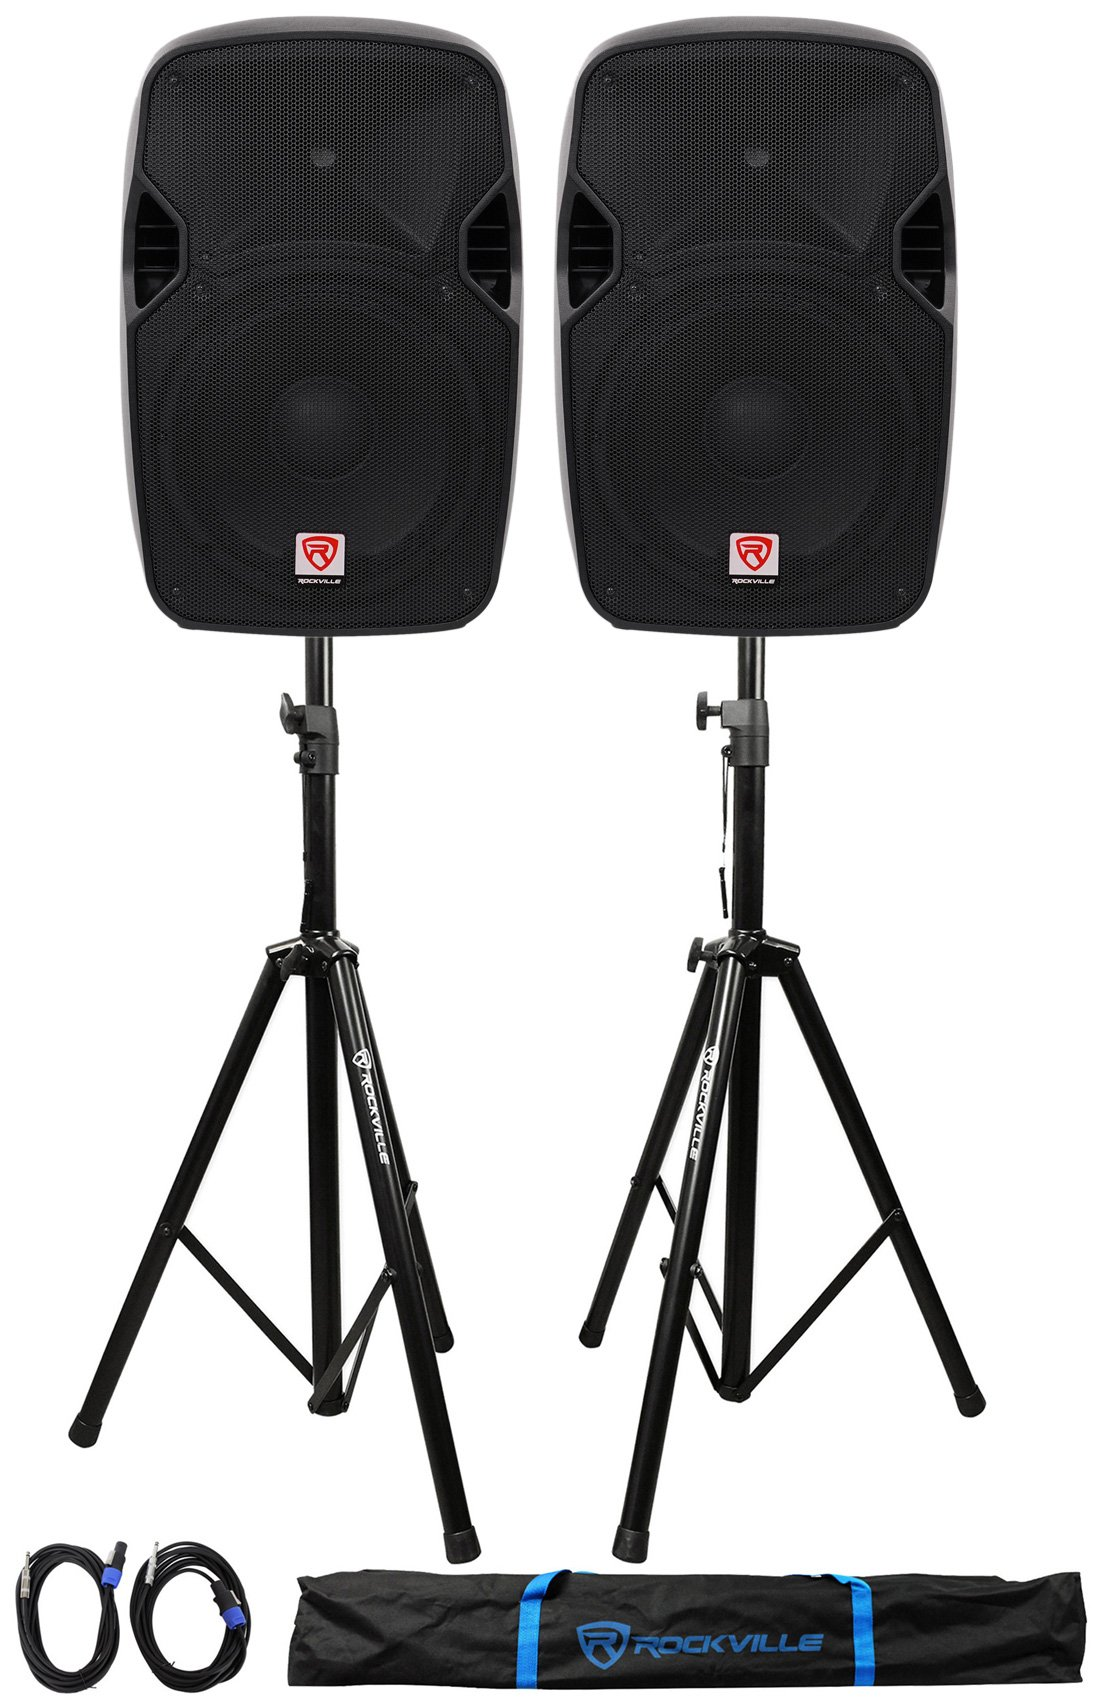 (2) Rockville SPGN124 12'' Passive 2400W DJ PA Speakers+Stands+Cables+Carry Bag